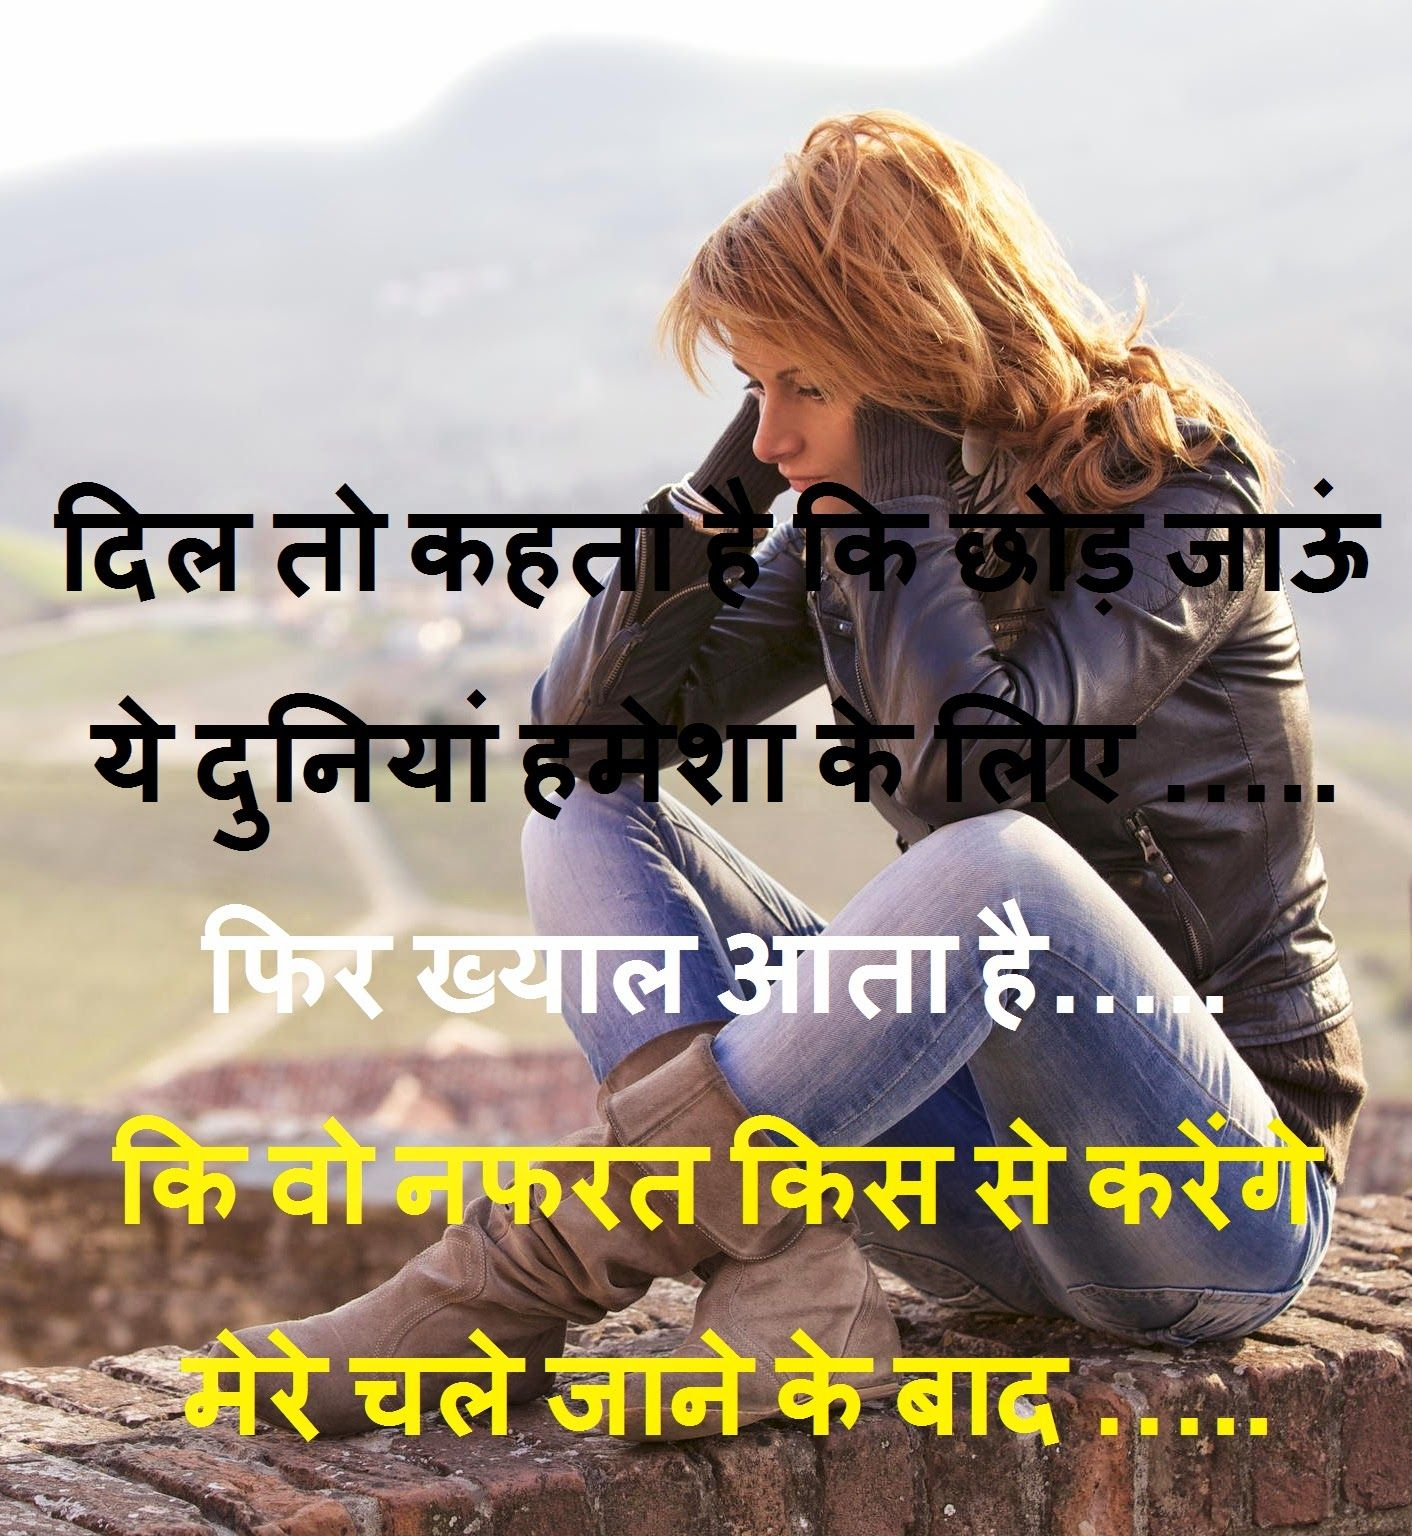 Quality Quotes In Hindi Adbddbceef